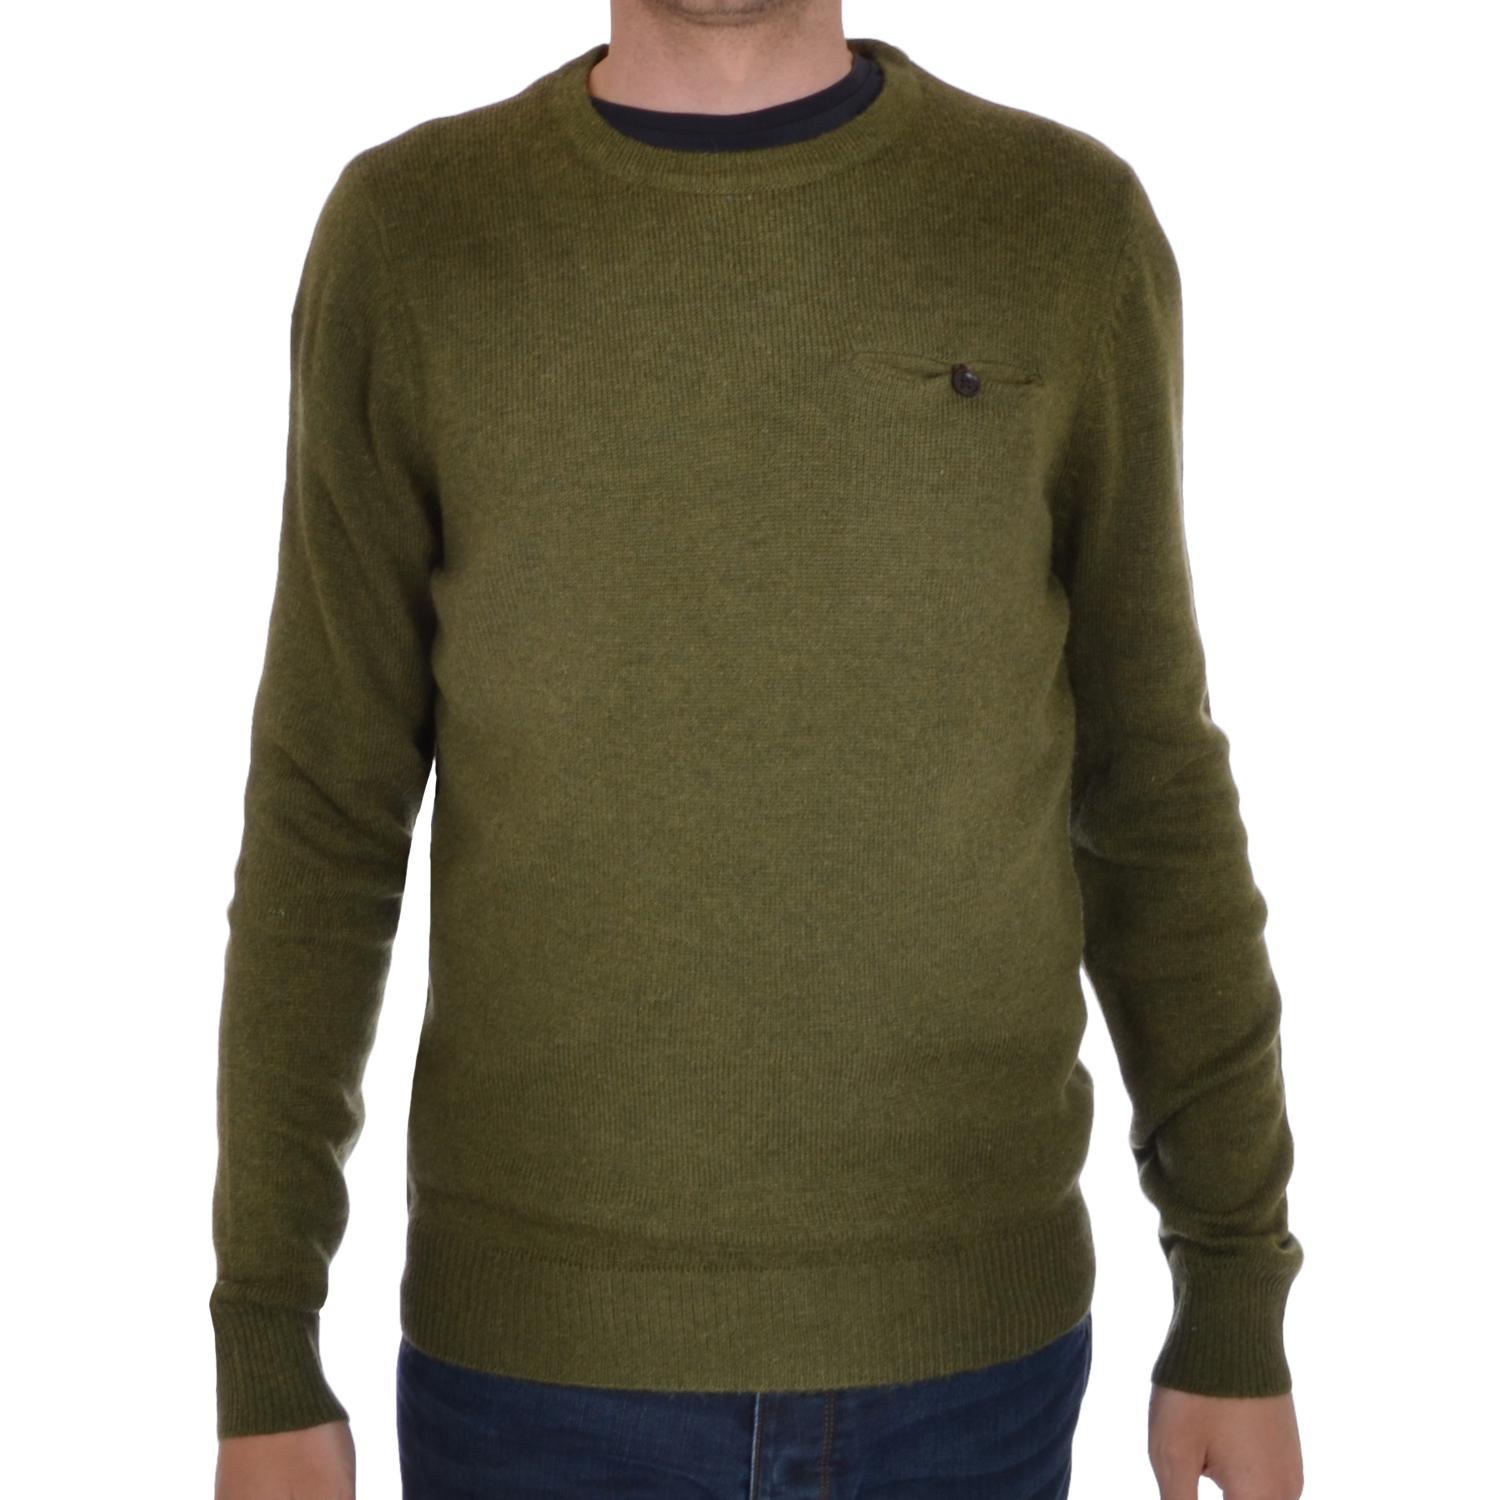 Layer up in effortless transitional looks with our men's knitwear collection. In a variety of designs, style out the season's trends of V-neck jumpers, zip necks and textured crews. Pair with tees,hoodies and denim for stylish attire, or smarten up your casual look with fine knits and knitted polos.